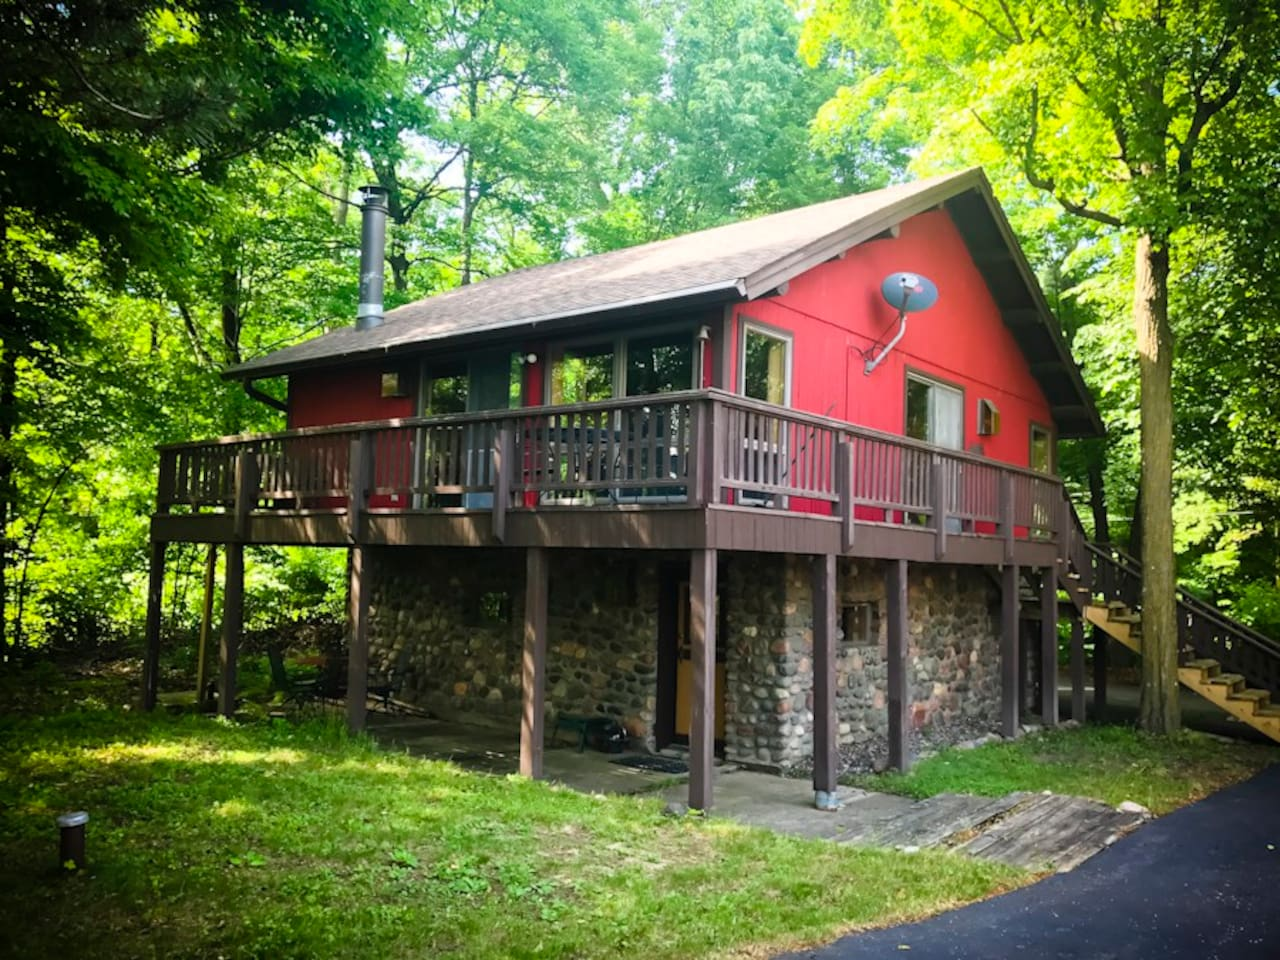 Cabin Getaway. ATV-UTV. Tuscobia Trail. Hunting. Birkebeiner. Ice fishing. Snowmobiling. Wood burning fireplace. Birchwood WI. 2 Q beds. Space for cots.